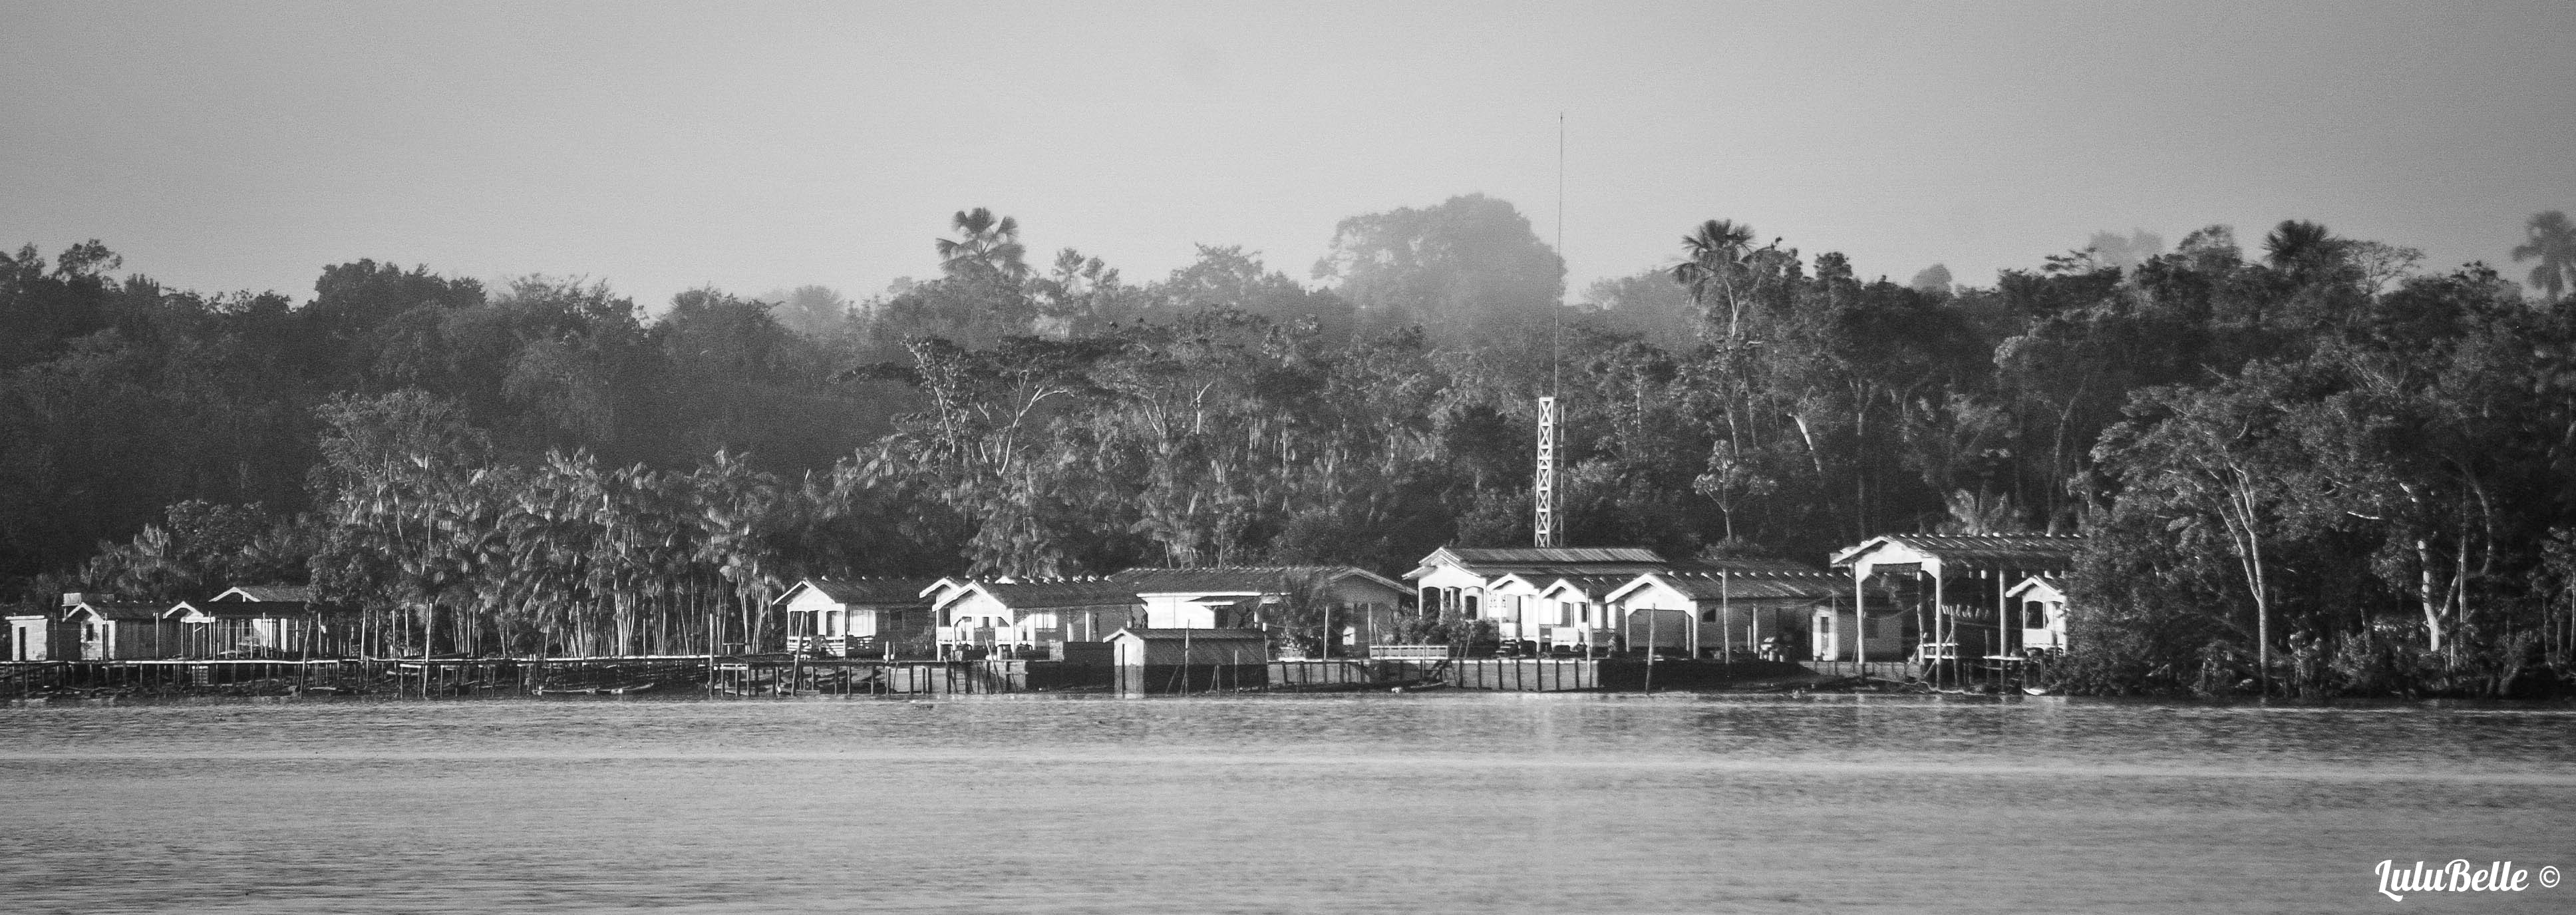 Amazon river town, A2A Expedition